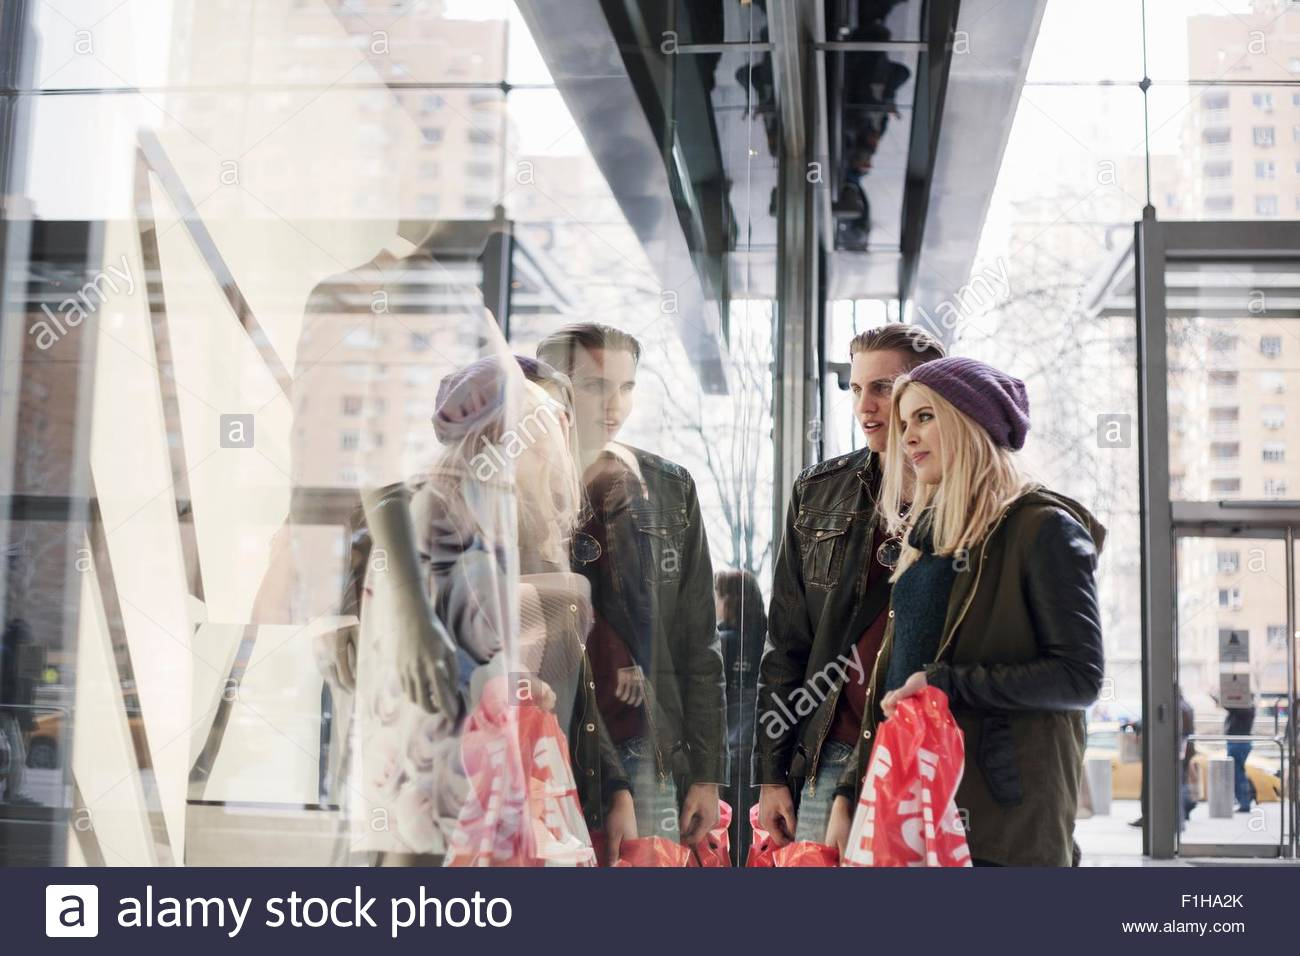 Young couple gazing at shop window with sale shopping bags,  New York, USA - Stock Image